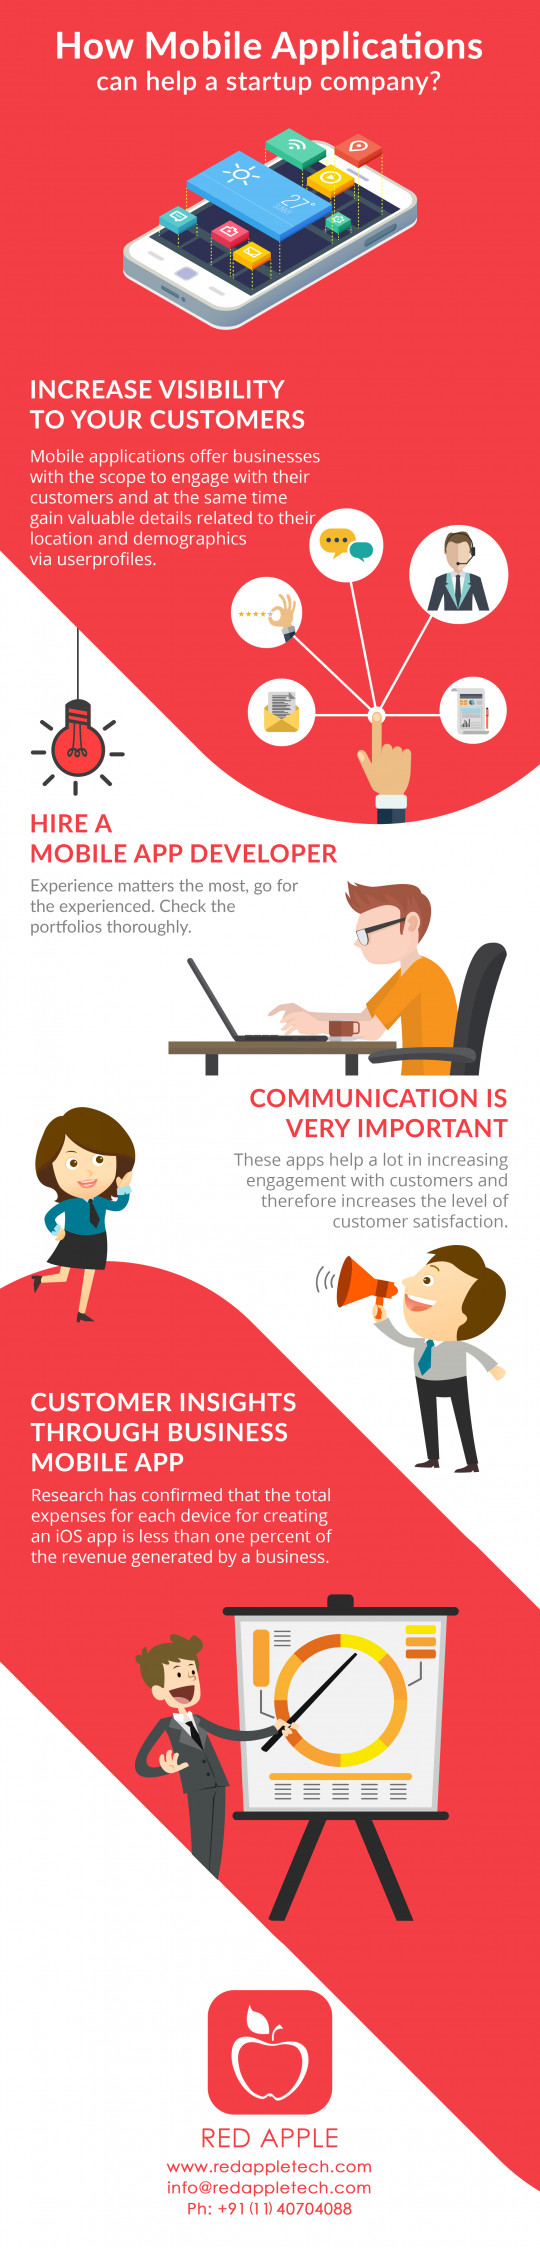 Recent Trends In Mobile Application Development for Startups